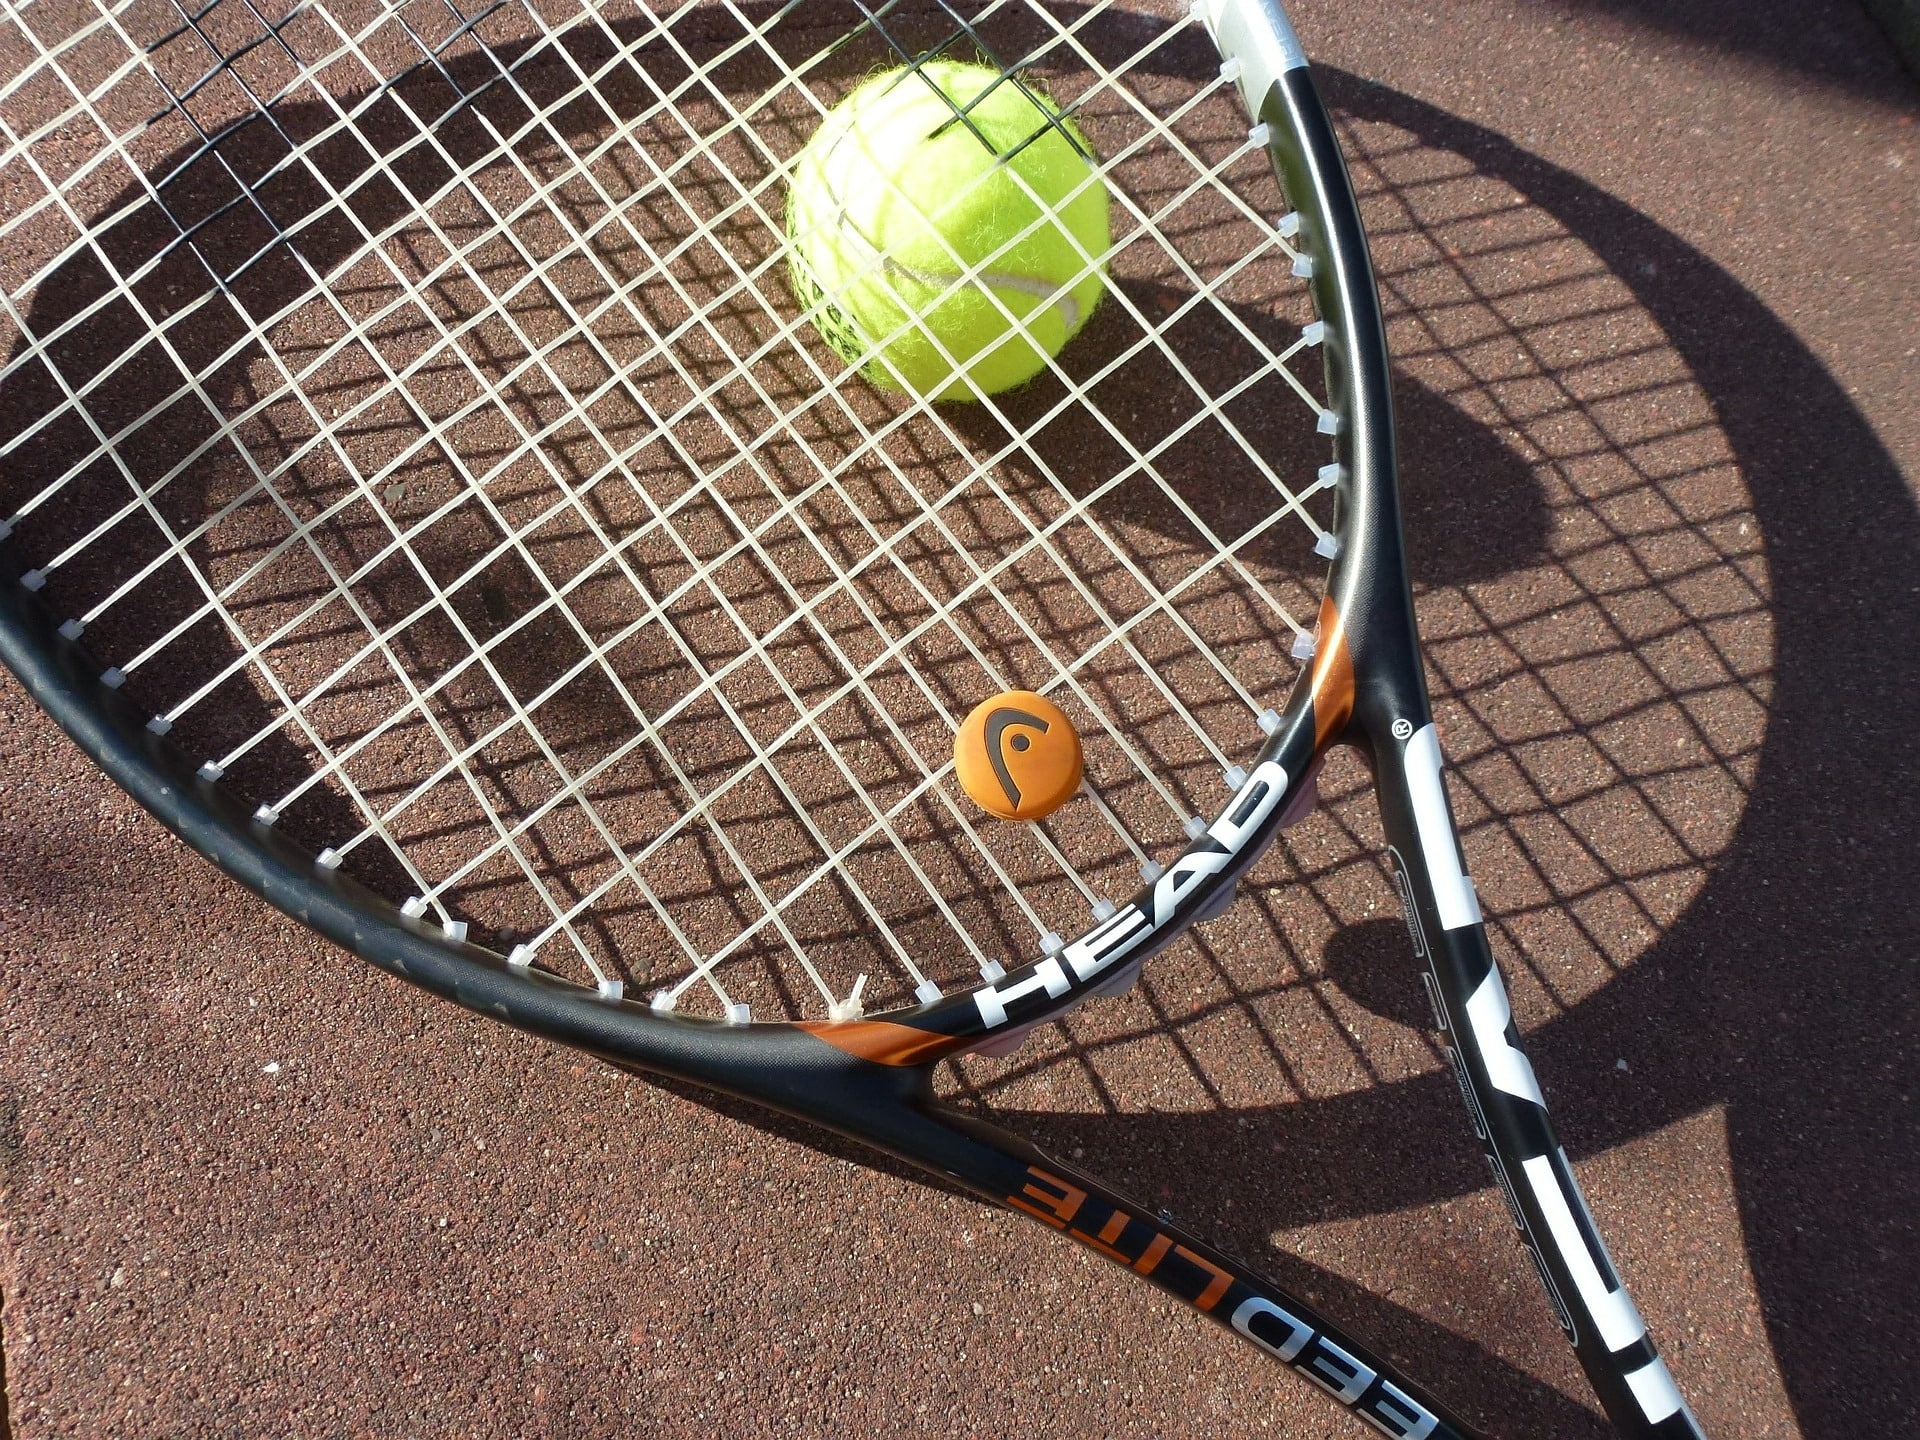 HEAD tennis racket with vibration dampener.